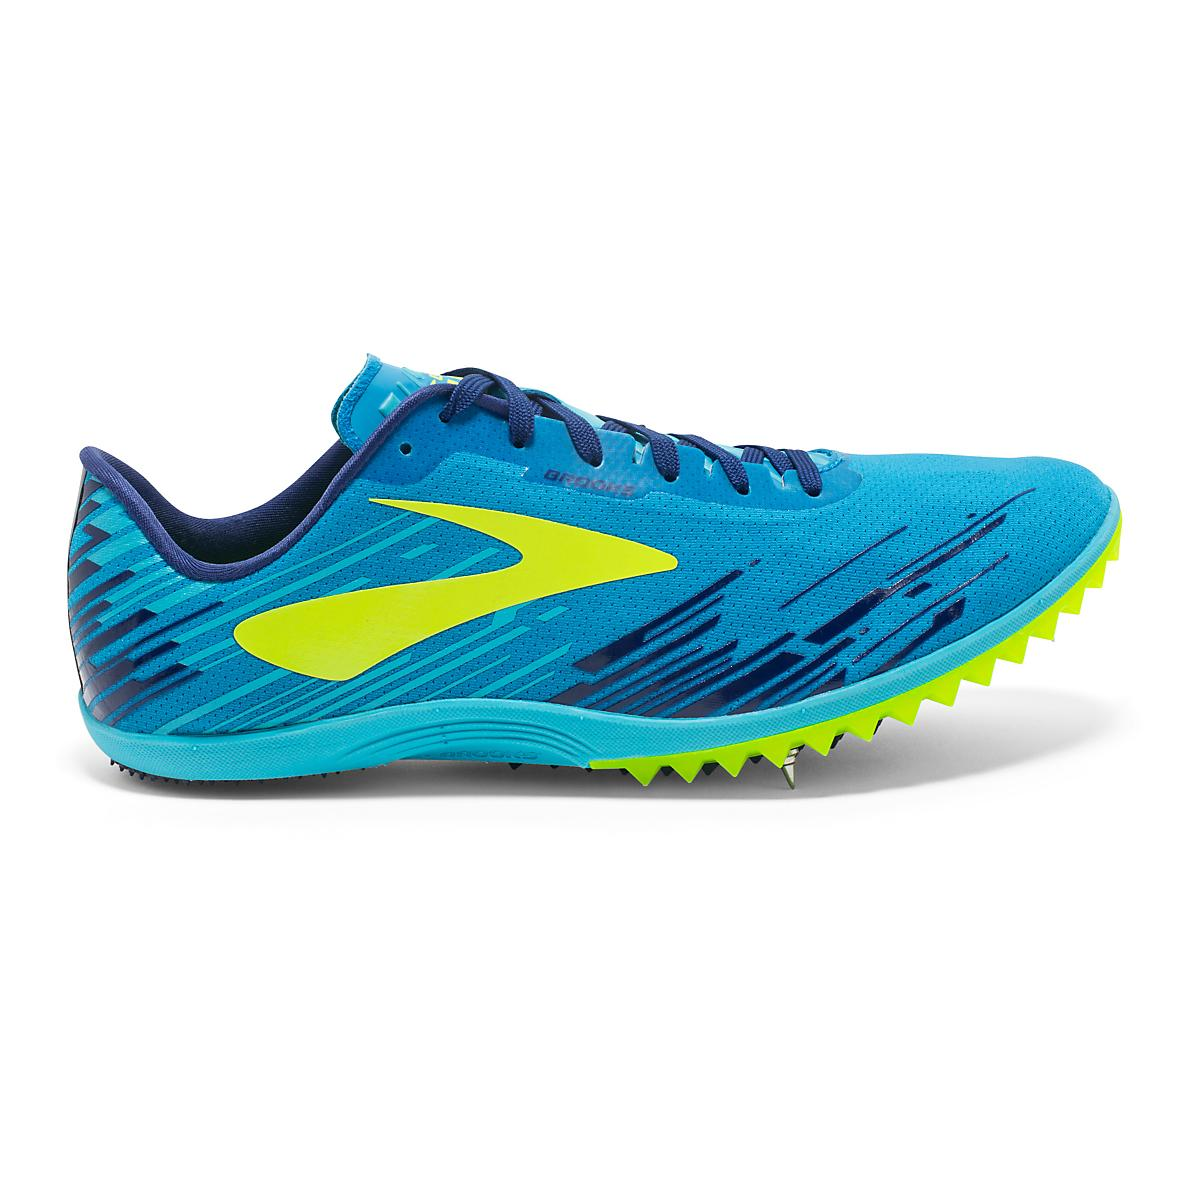 d032fd027645b Mens Brooks Mach 18 Cross Country Shoe at Road Runner Sports